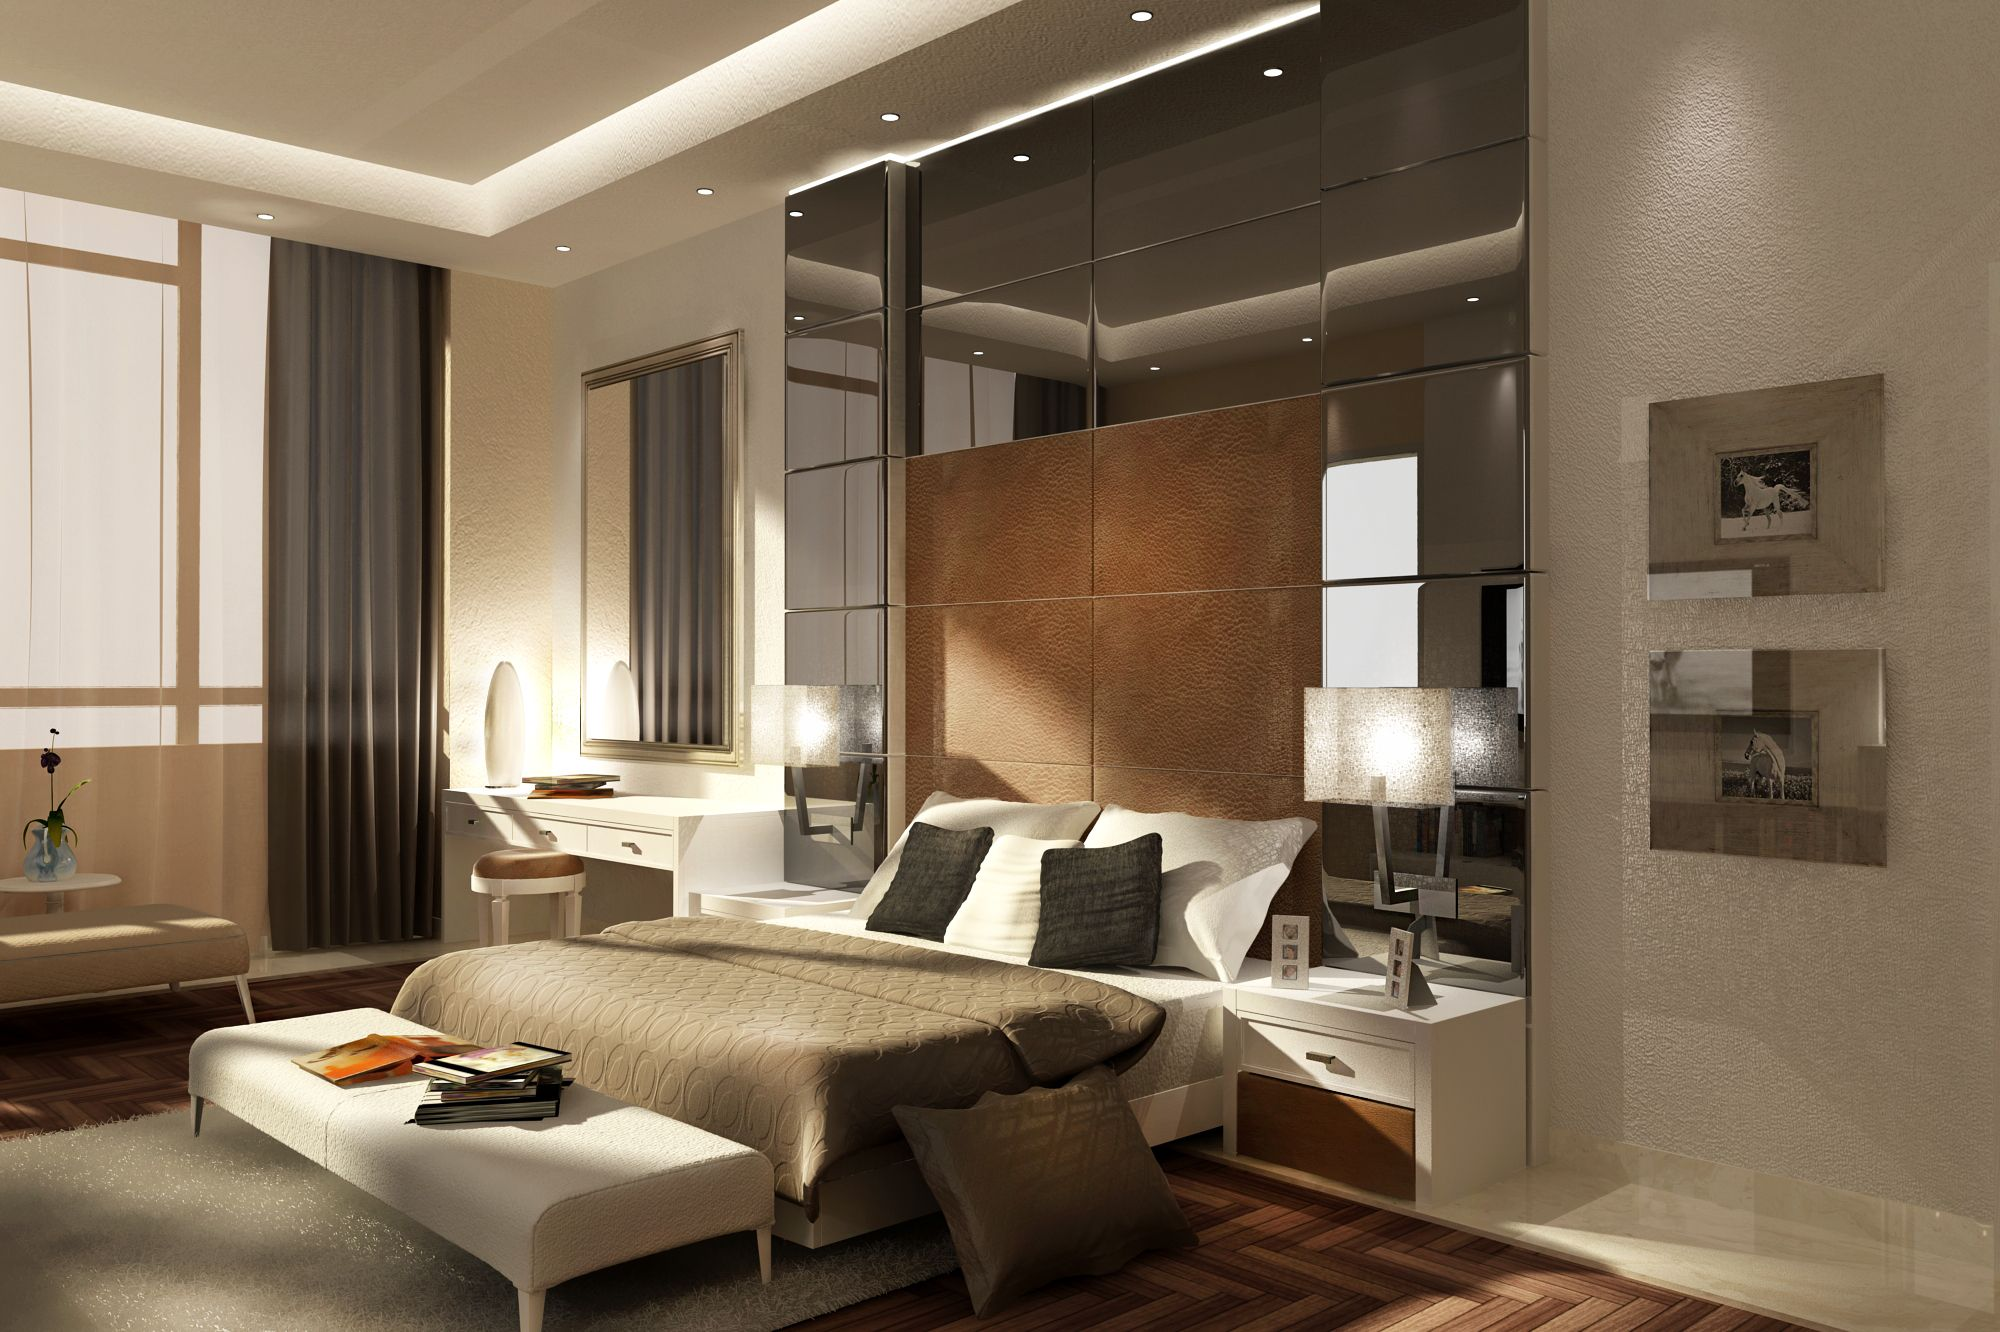 3d render 3d max interior design bedroom design modern for Model bedroom interior design